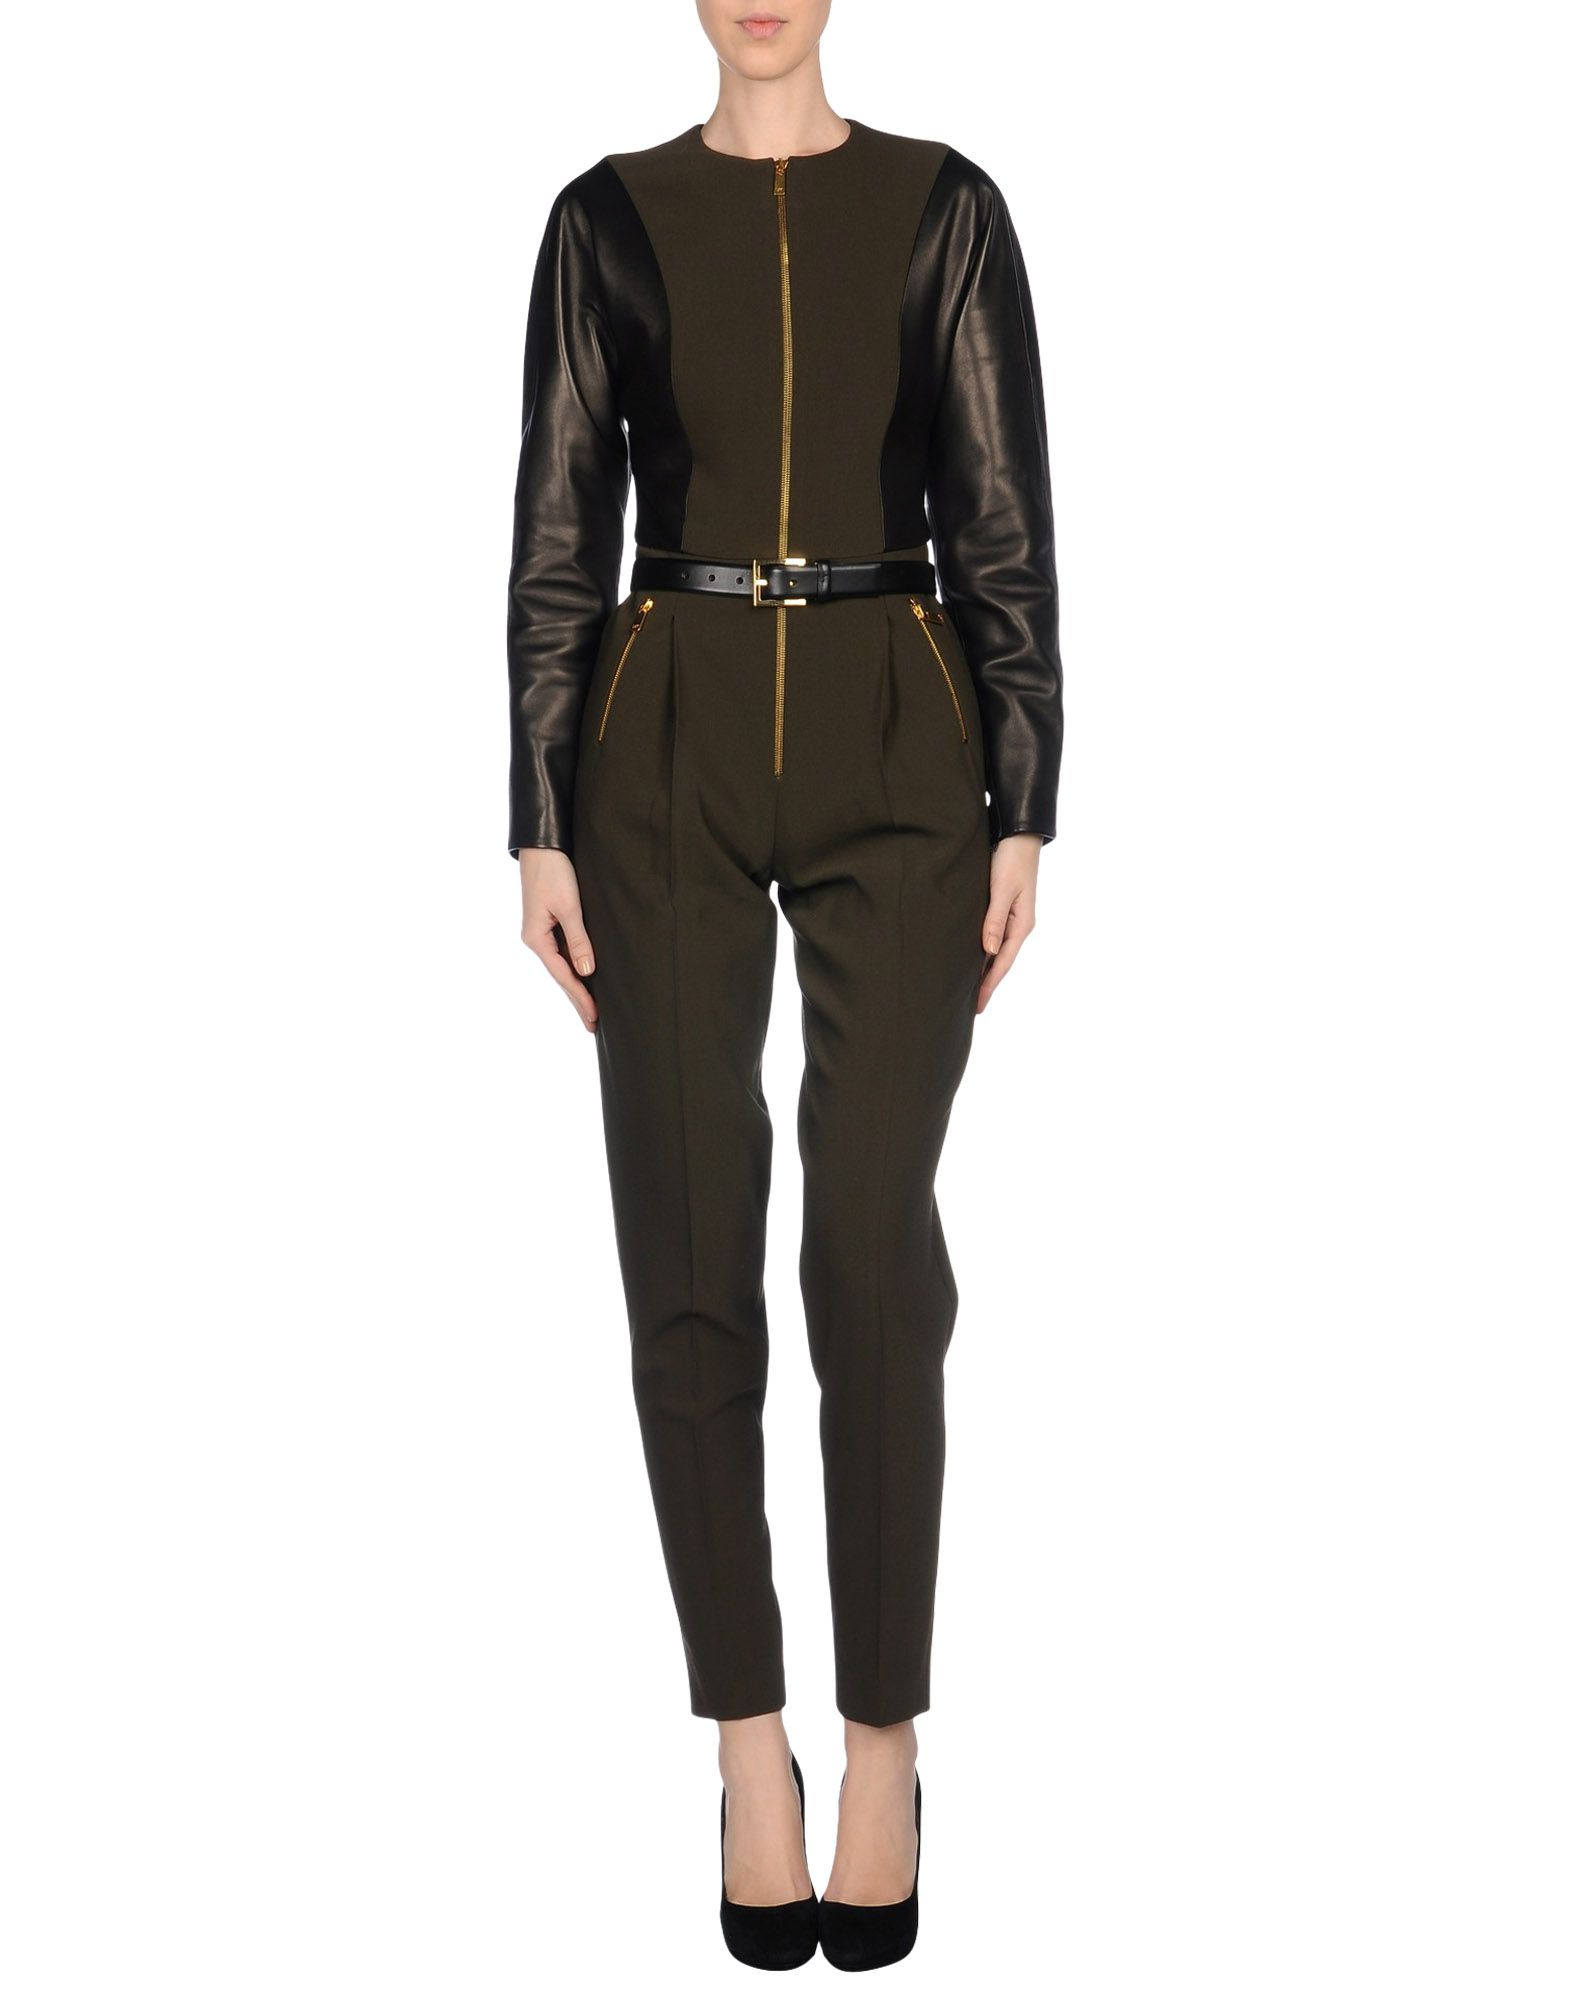 michael kors trouser dungaree in green military green lyst. Black Bedroom Furniture Sets. Home Design Ideas